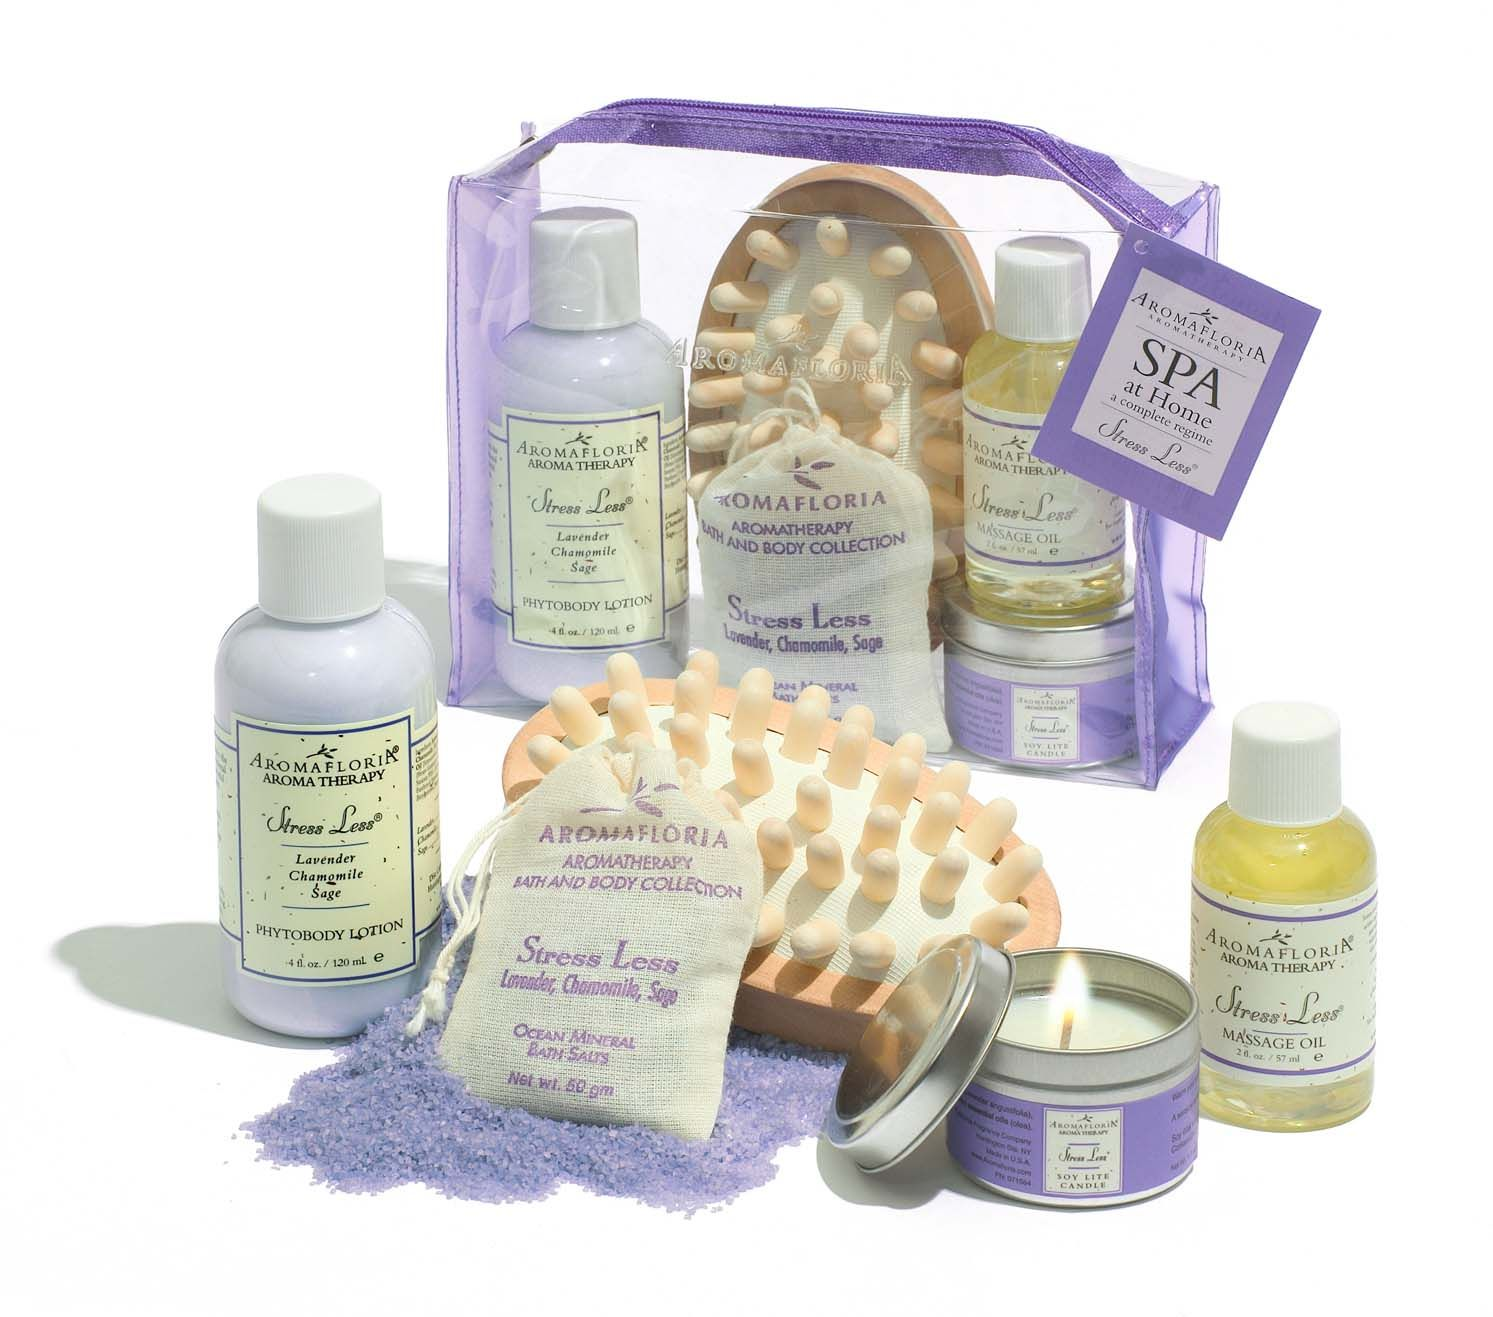 spa kit | SPA | Pinterest | Spa, Lavender and Body scrubs